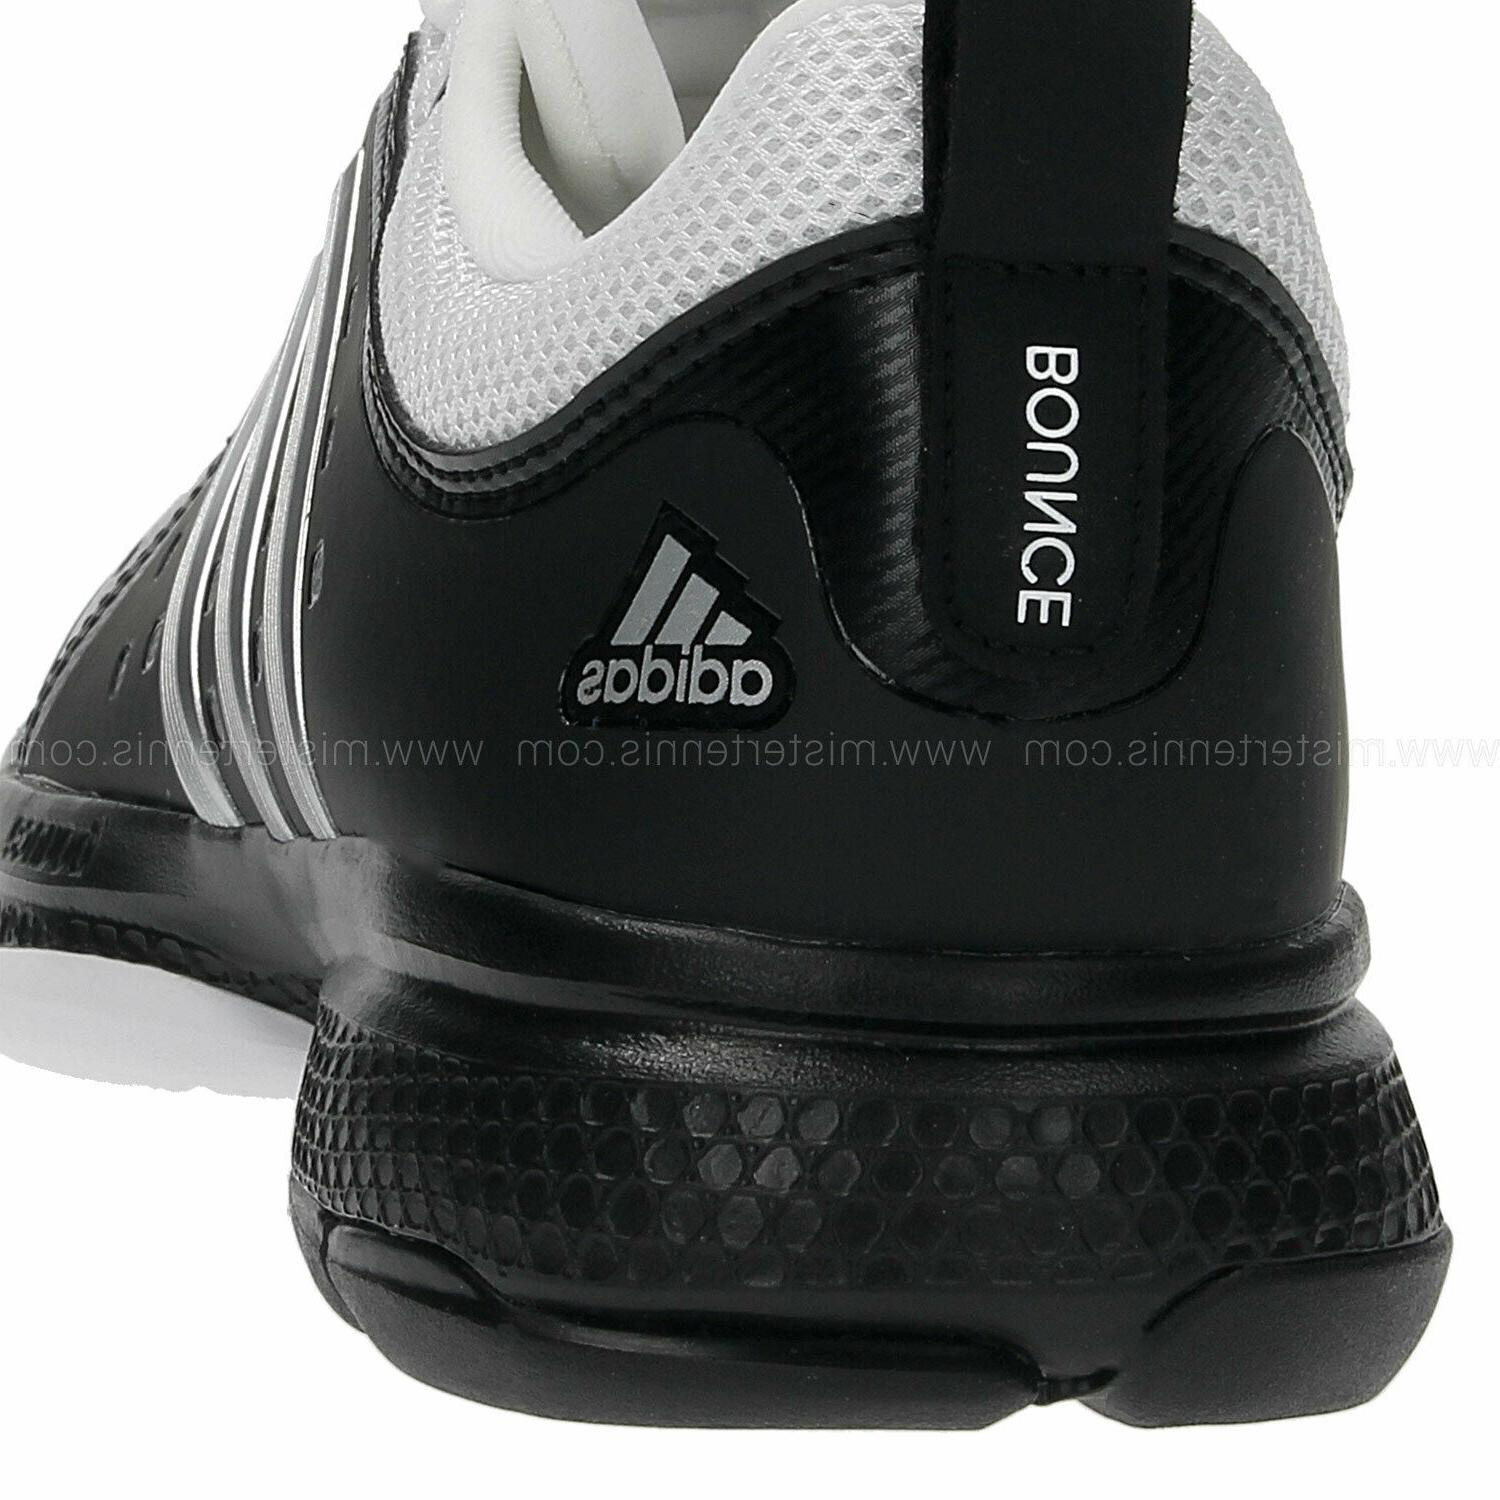 ADIDAS BARRICADE CLASSIC TENNIS SHOES 8.5 CG3108